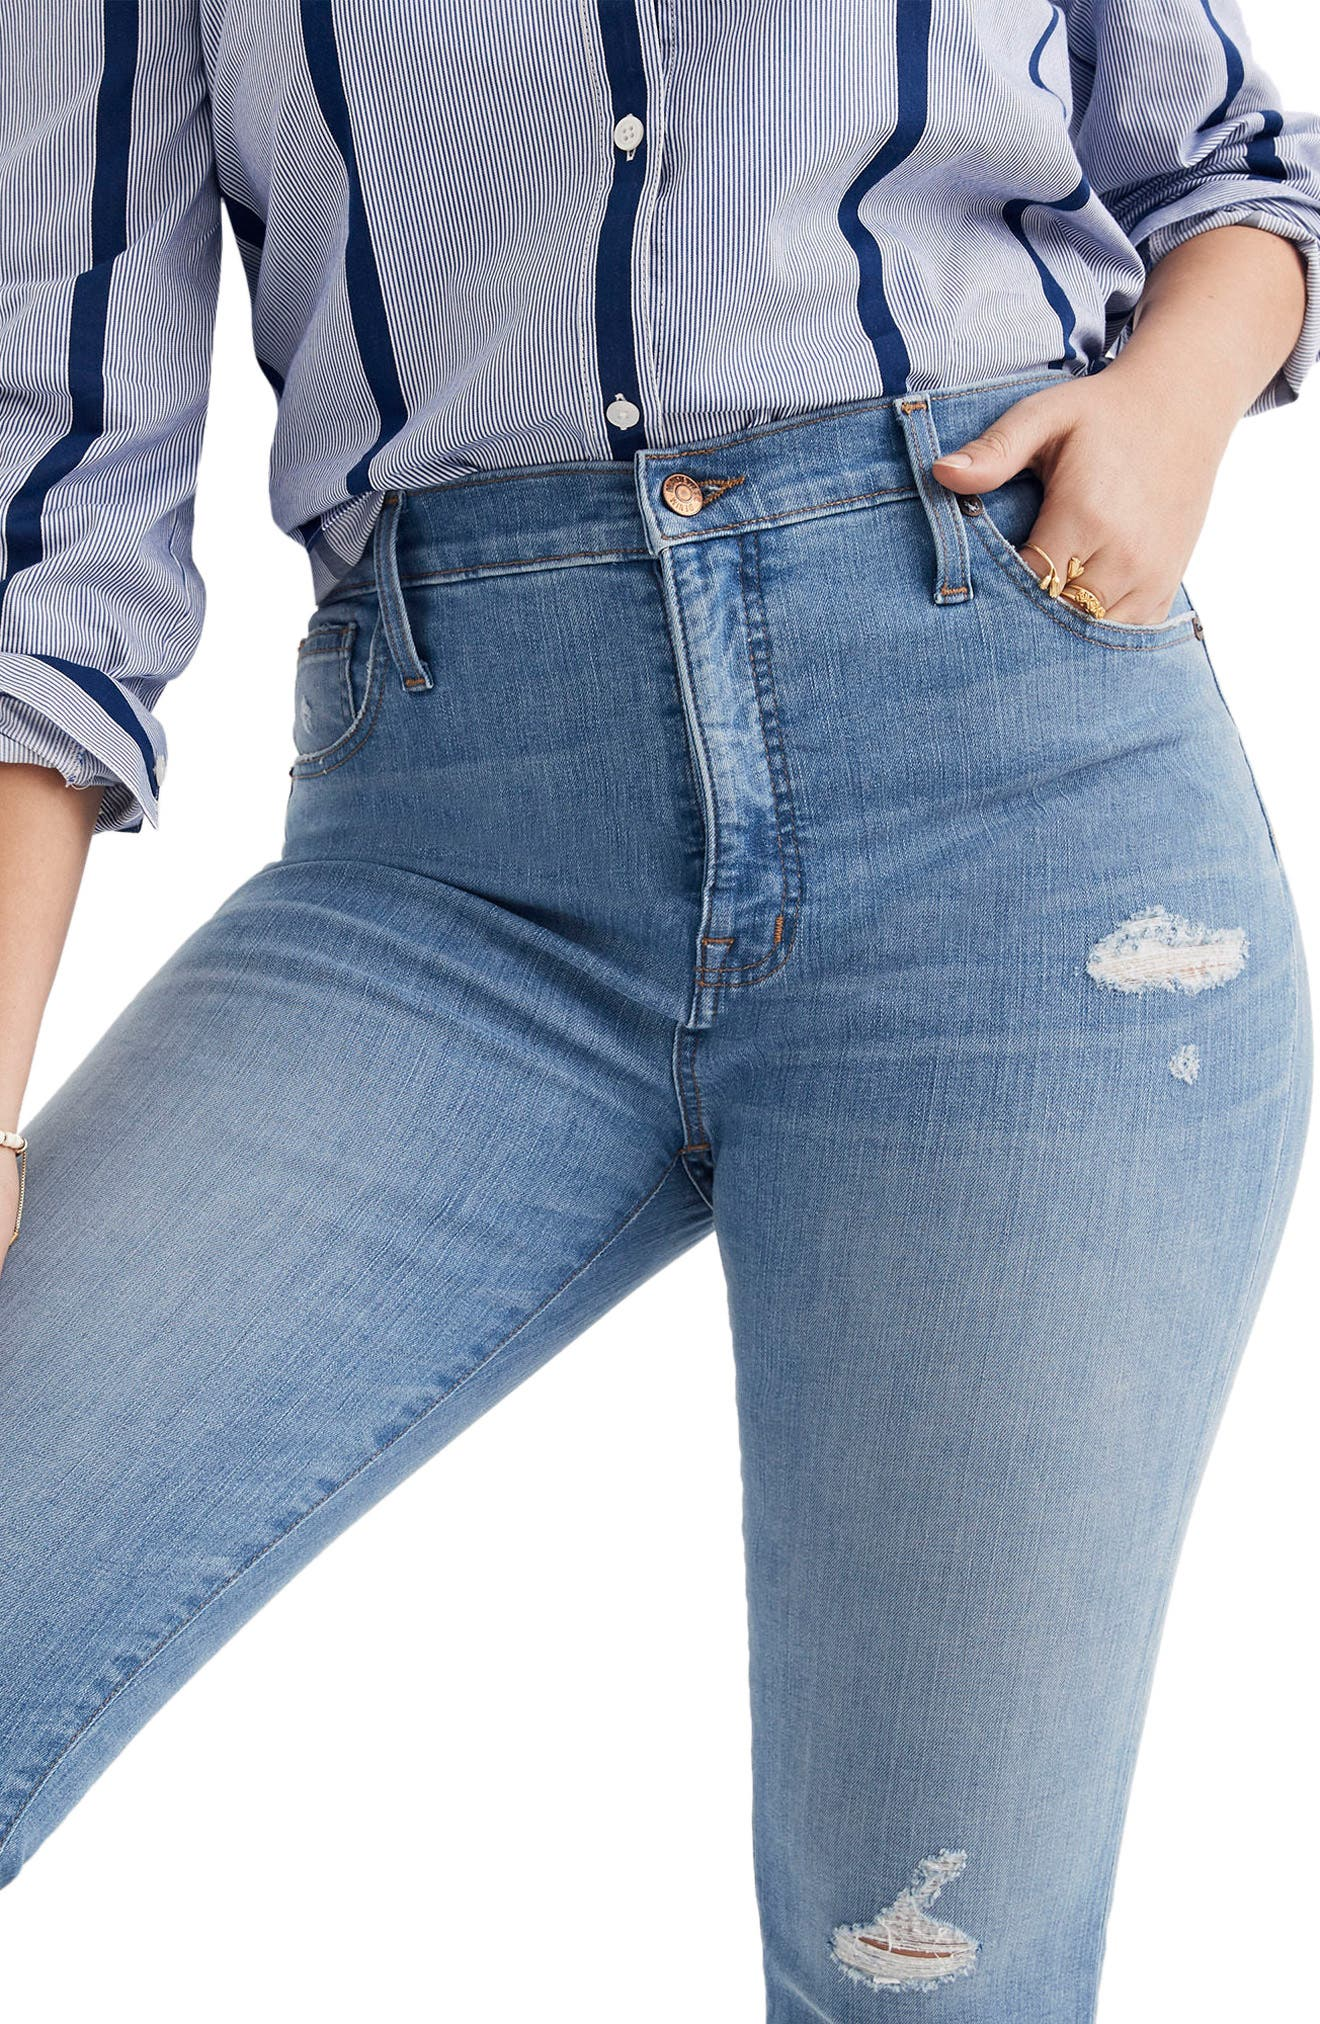 9-Inch High Waist Skinny Jeans,                             Alternate thumbnail 4, color,                             900